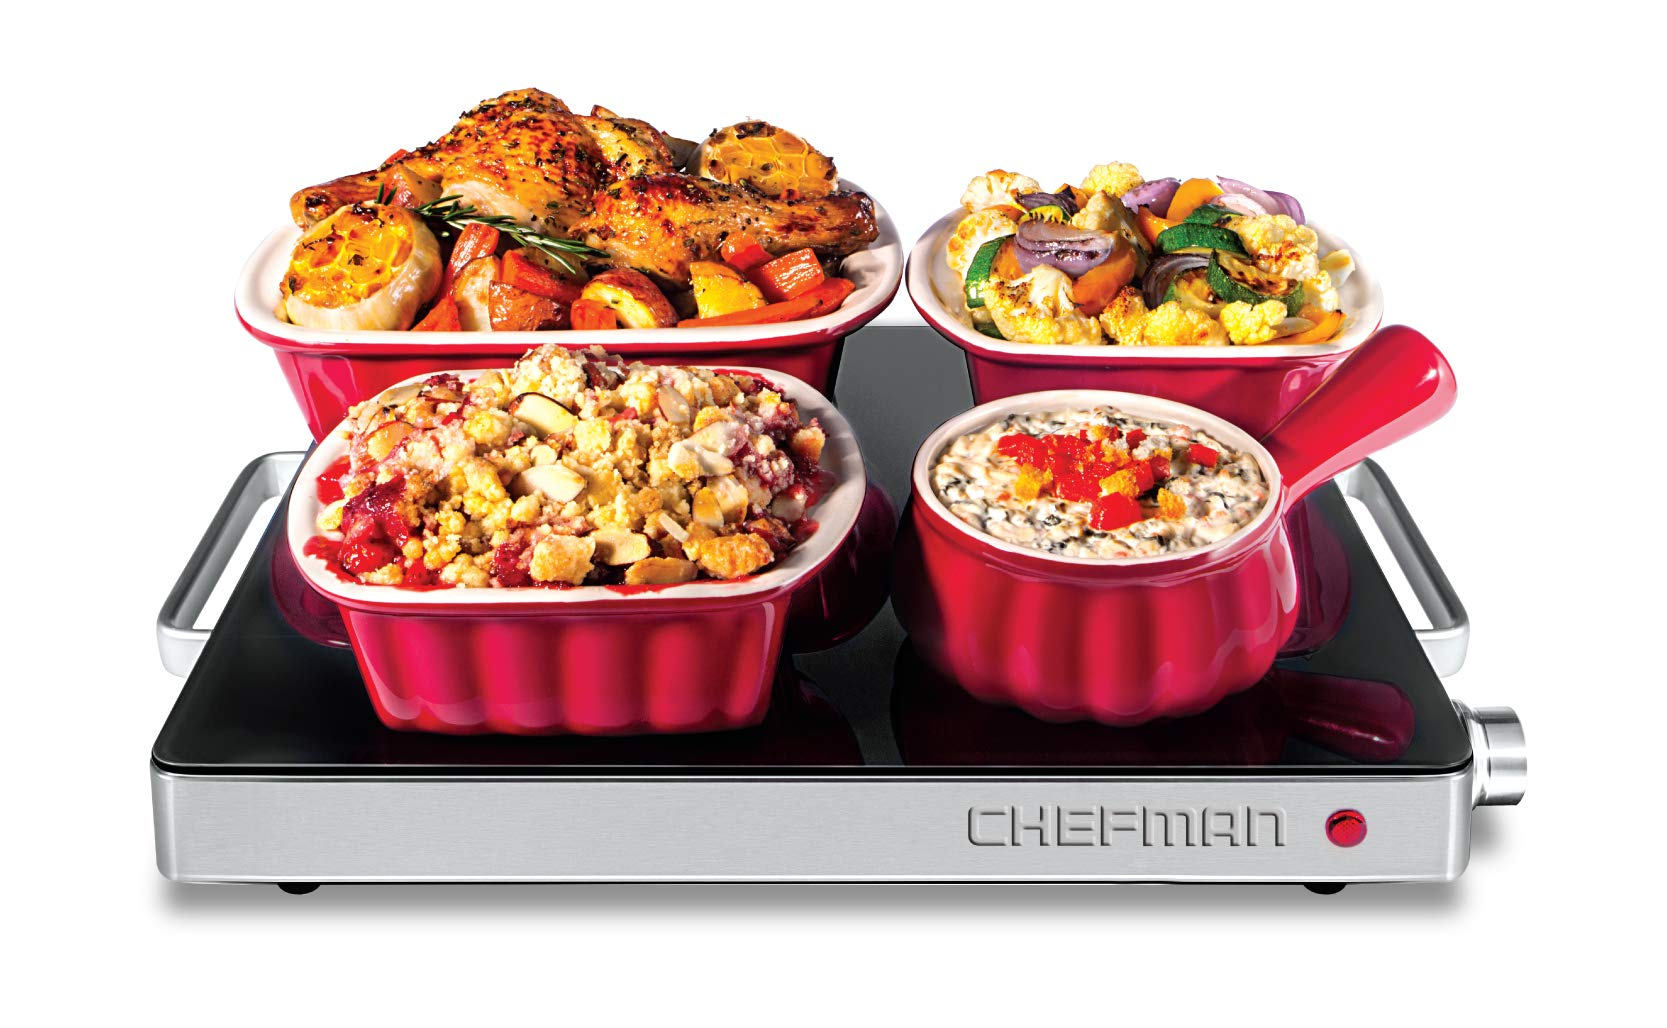 Chefman Compact Glasstop Warming Tray with Adjustable Temperature Control Perfect for Buffets, Restaurants, Parties, Events, Home Dinners and Travel, Mini 15x12 Inch Surface, Keeps Food Hot, Black by Chefman